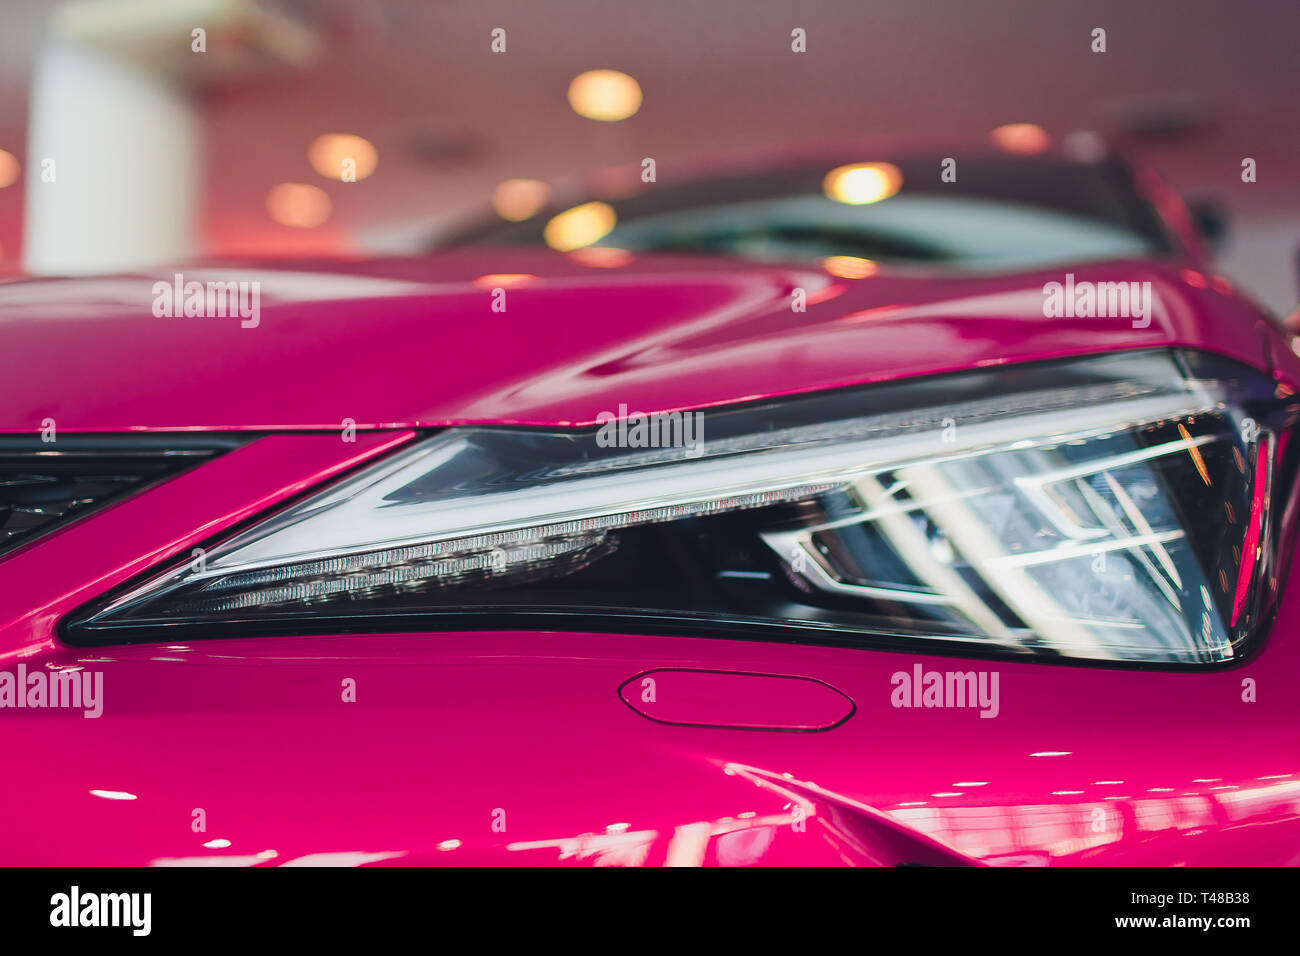 Close up shot headlight in luxury pink car background. Modern and expensive sport car concept. Stock Photo